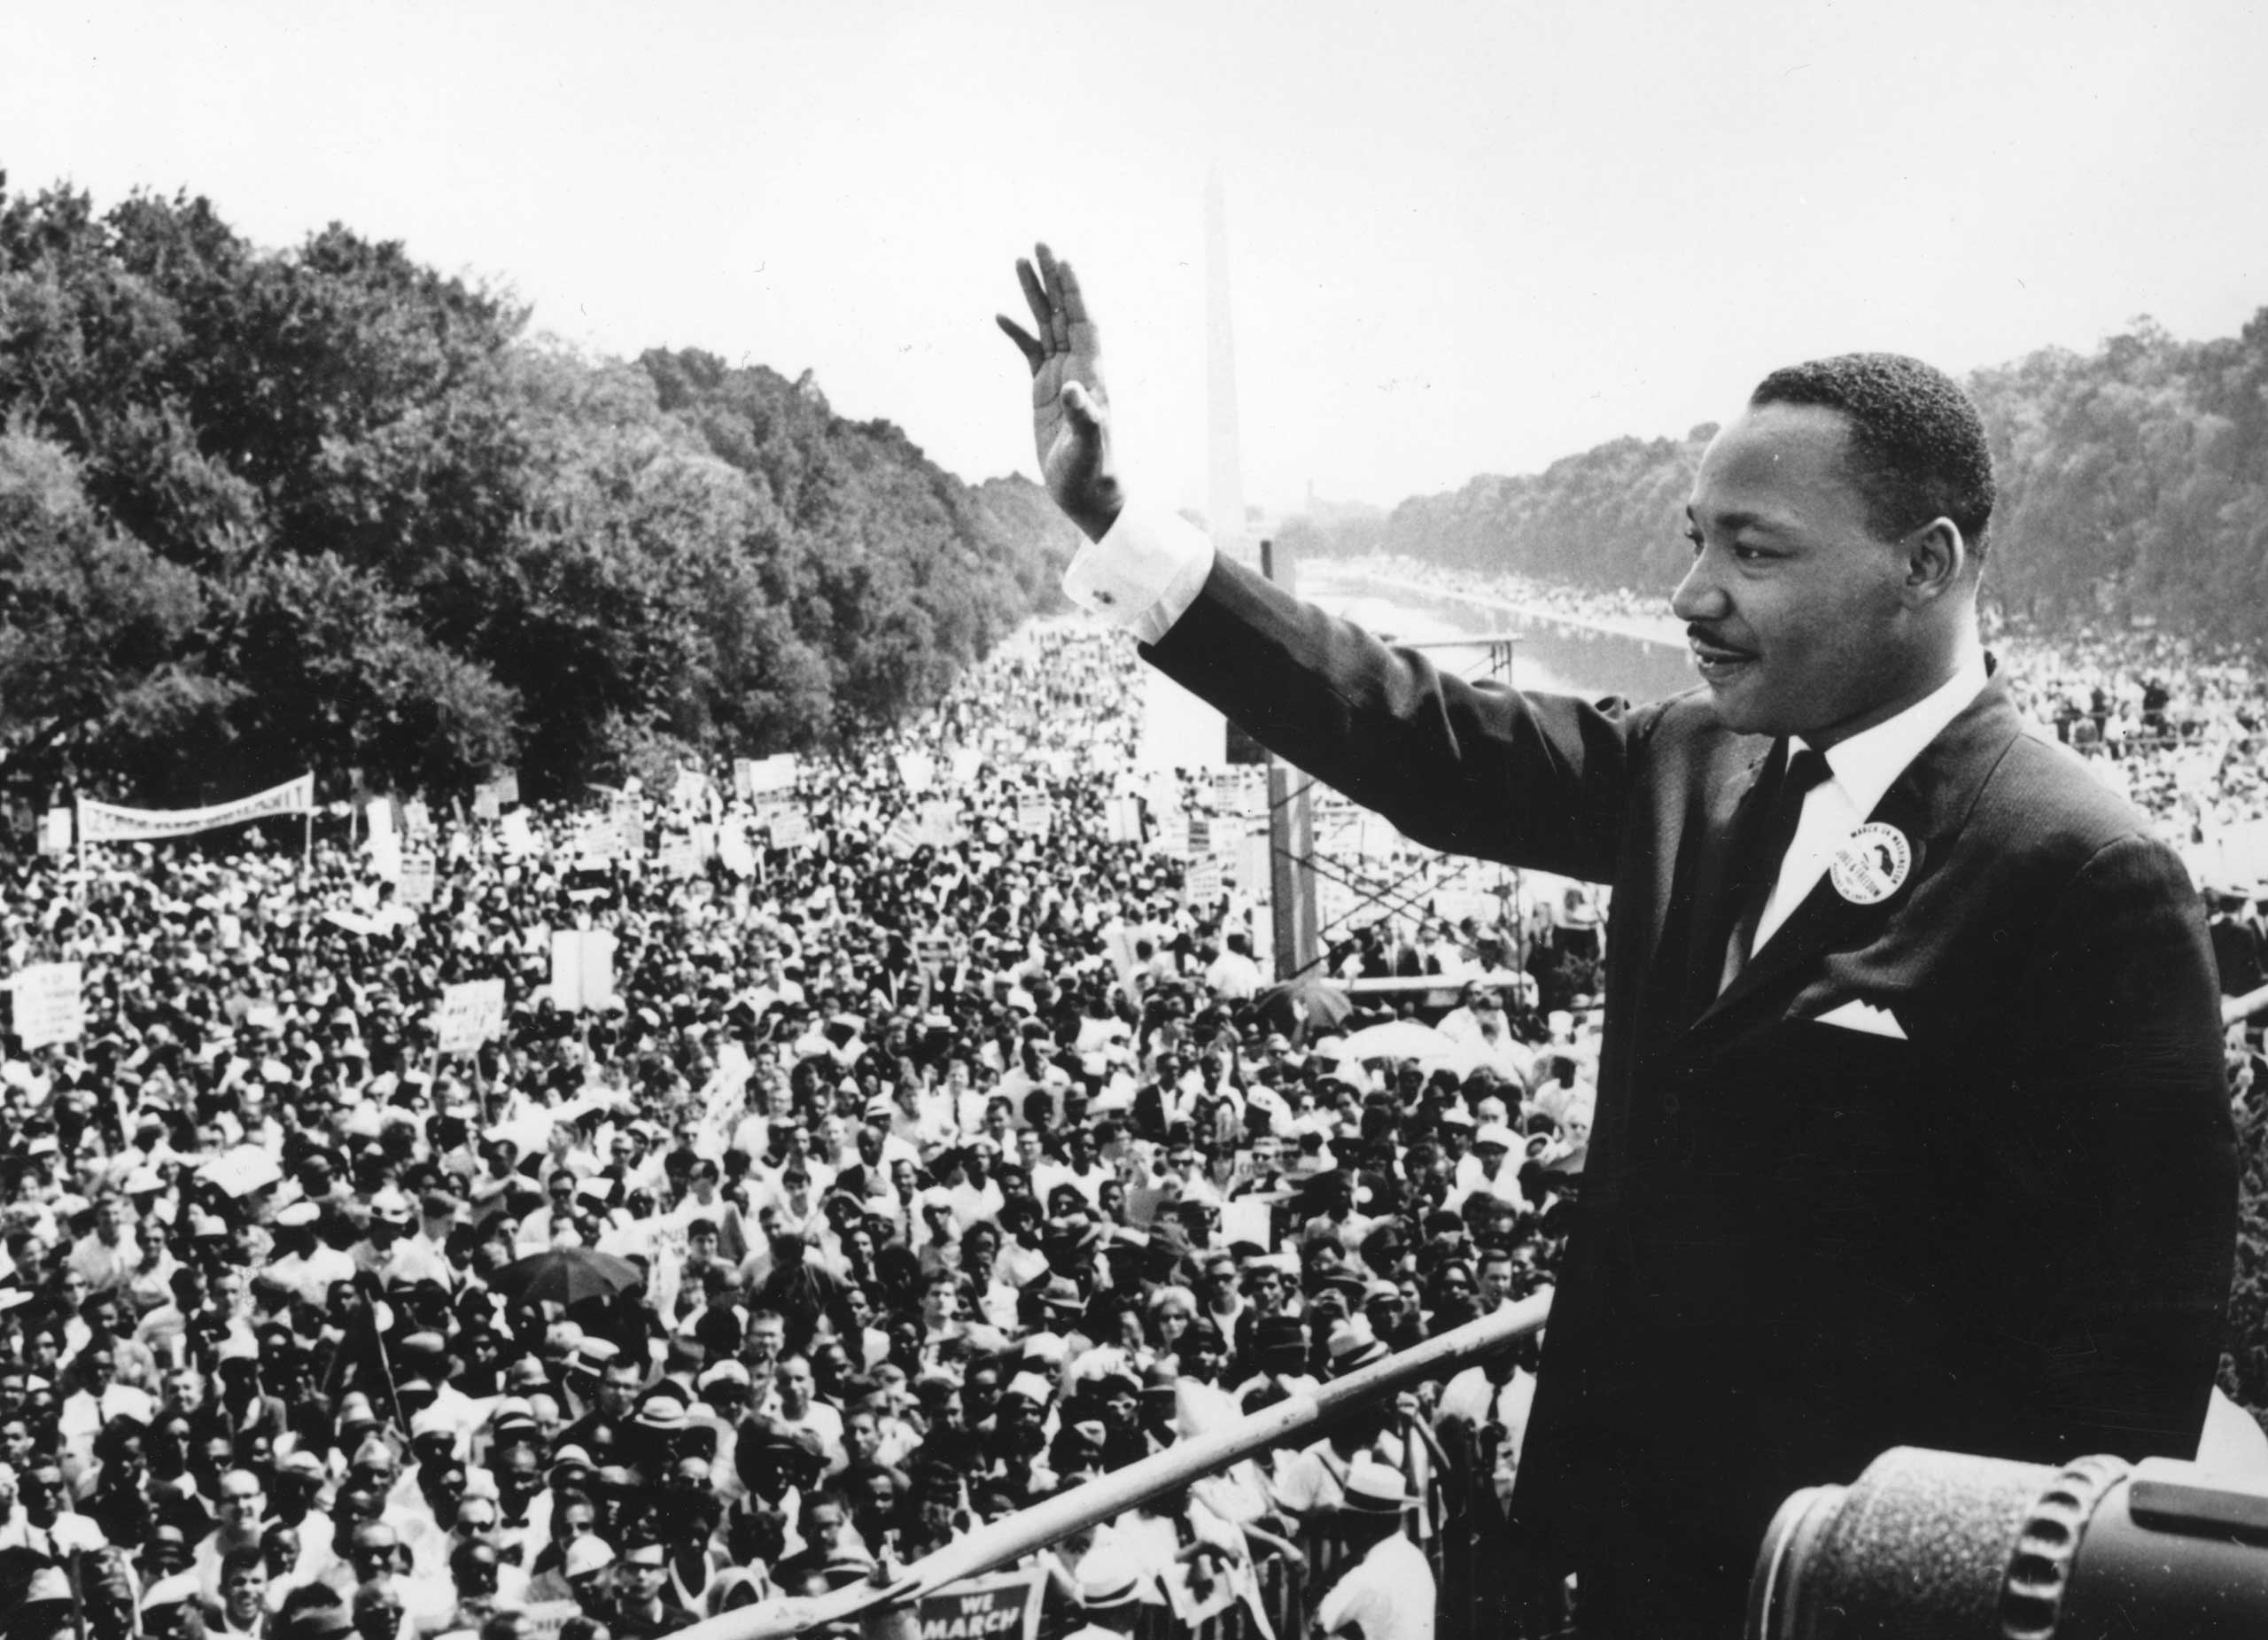 Martin Luther King Jr. addresses crowds during the March On Washington at the Lincoln Memorial, Washington DC, in 1963.